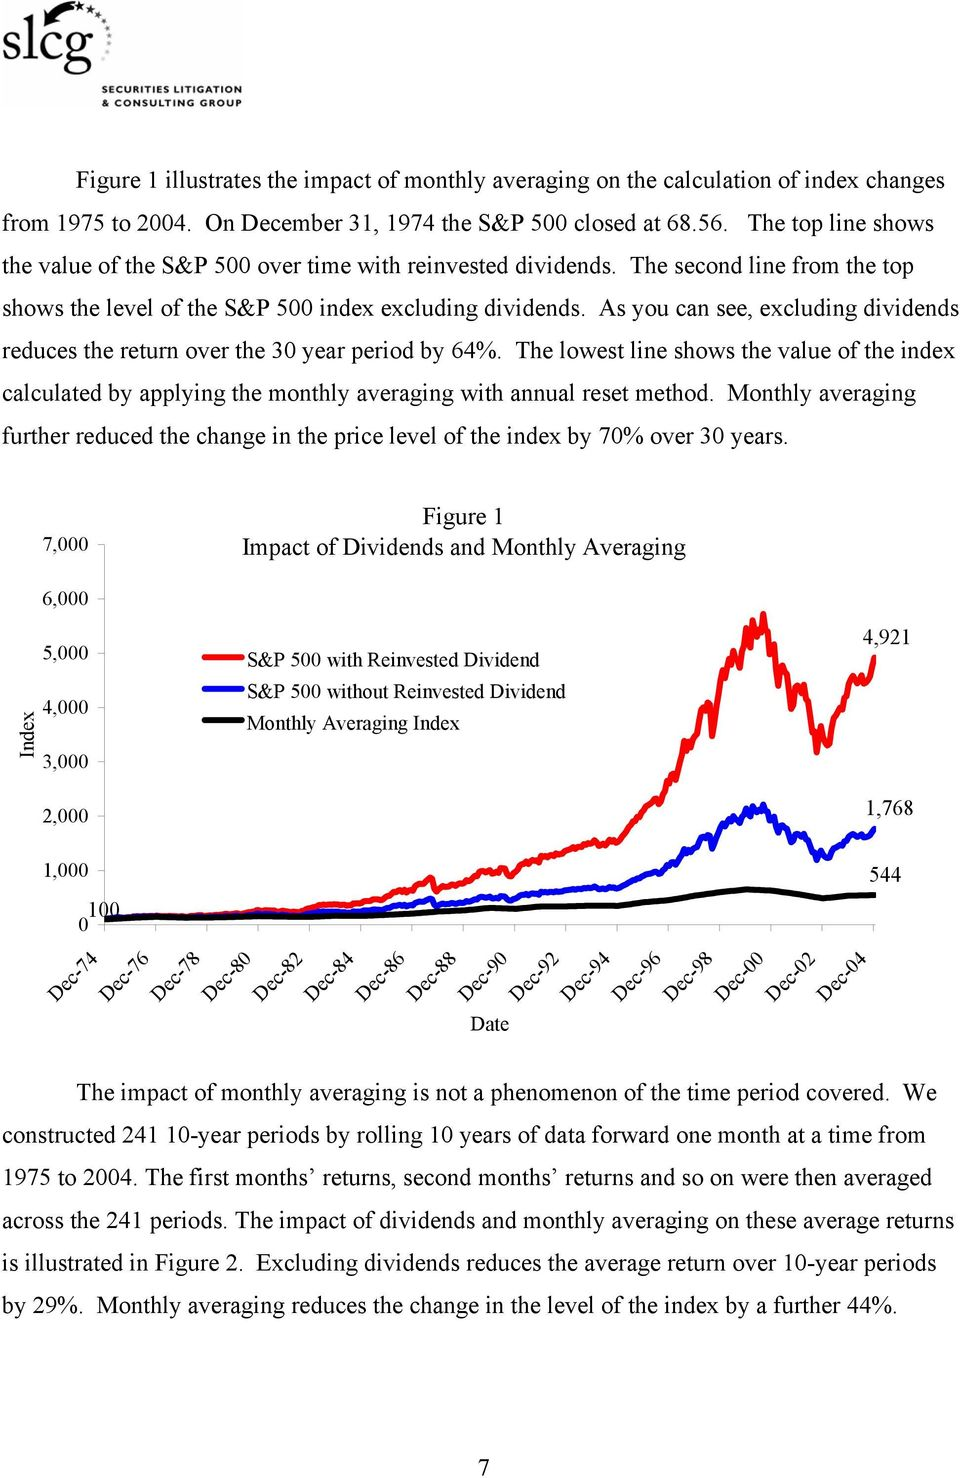 As you can see, excluding dividends reduces the return over the 30 year period by 64%.